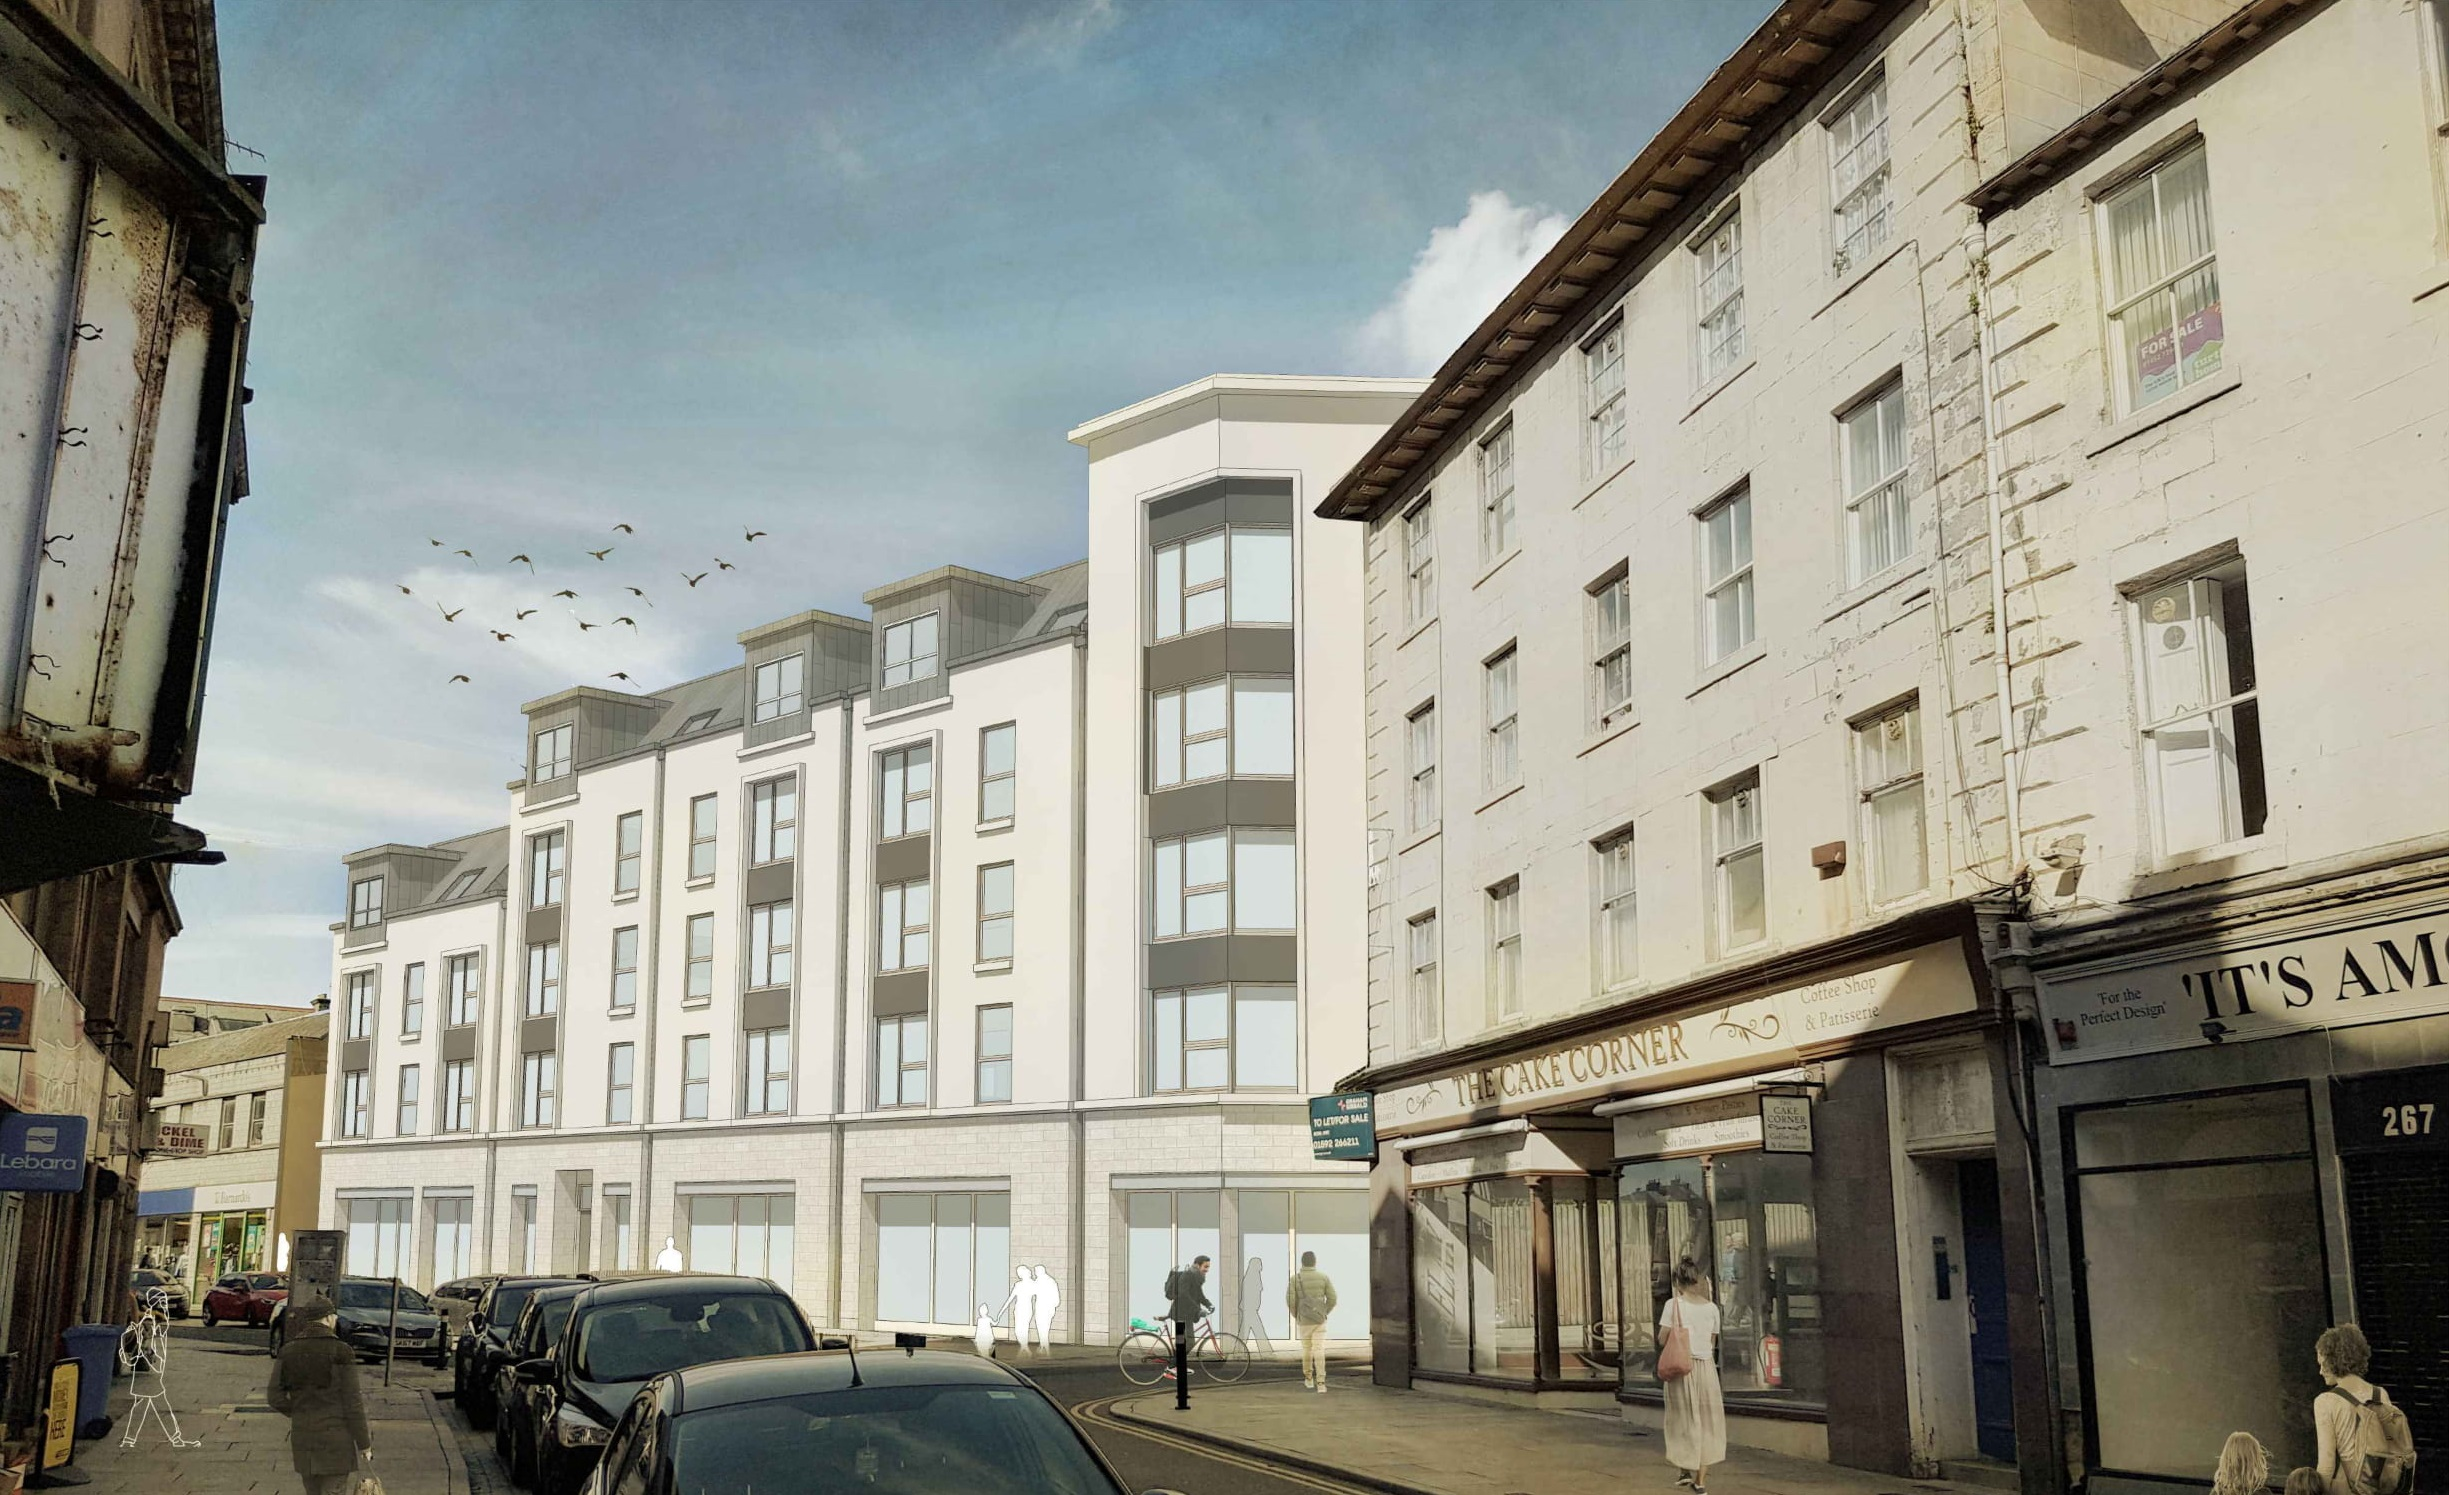 An artist's impression of how the proposed flats could look.